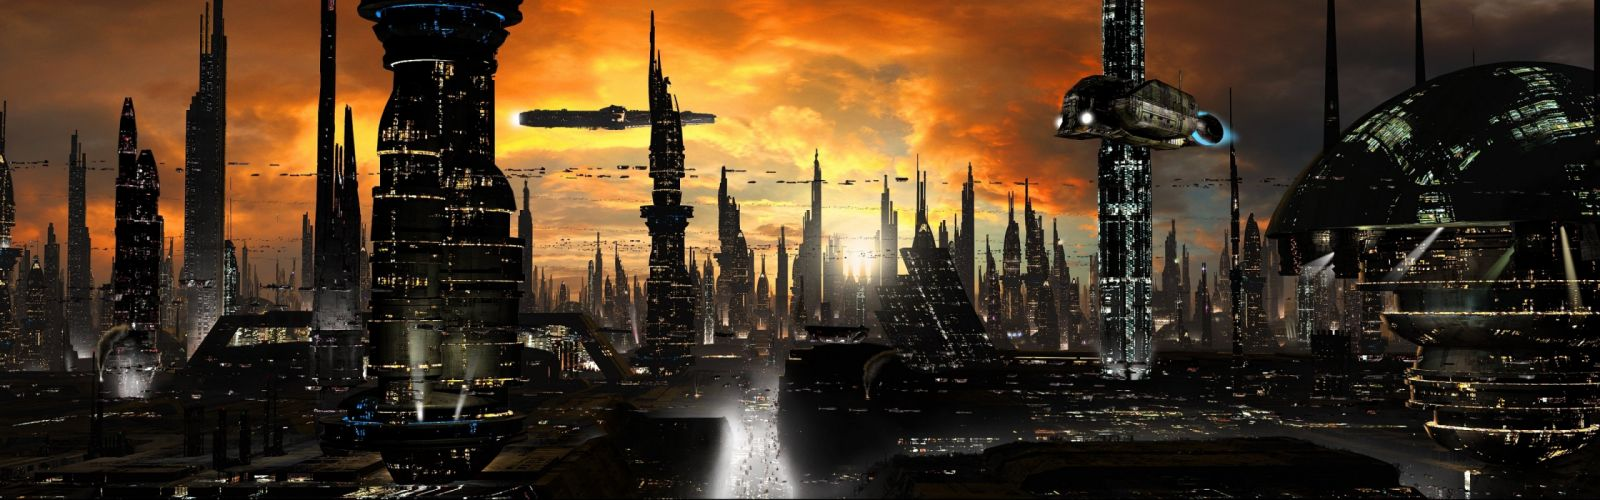 descriptive essay of futuristic city I need to wite a descriptive essay about city at night i have no idea how to start it should i start it like - it was a astronishing city, with lots of towering rigid skyscrapers&quot lol i tried my best dont laught at it.